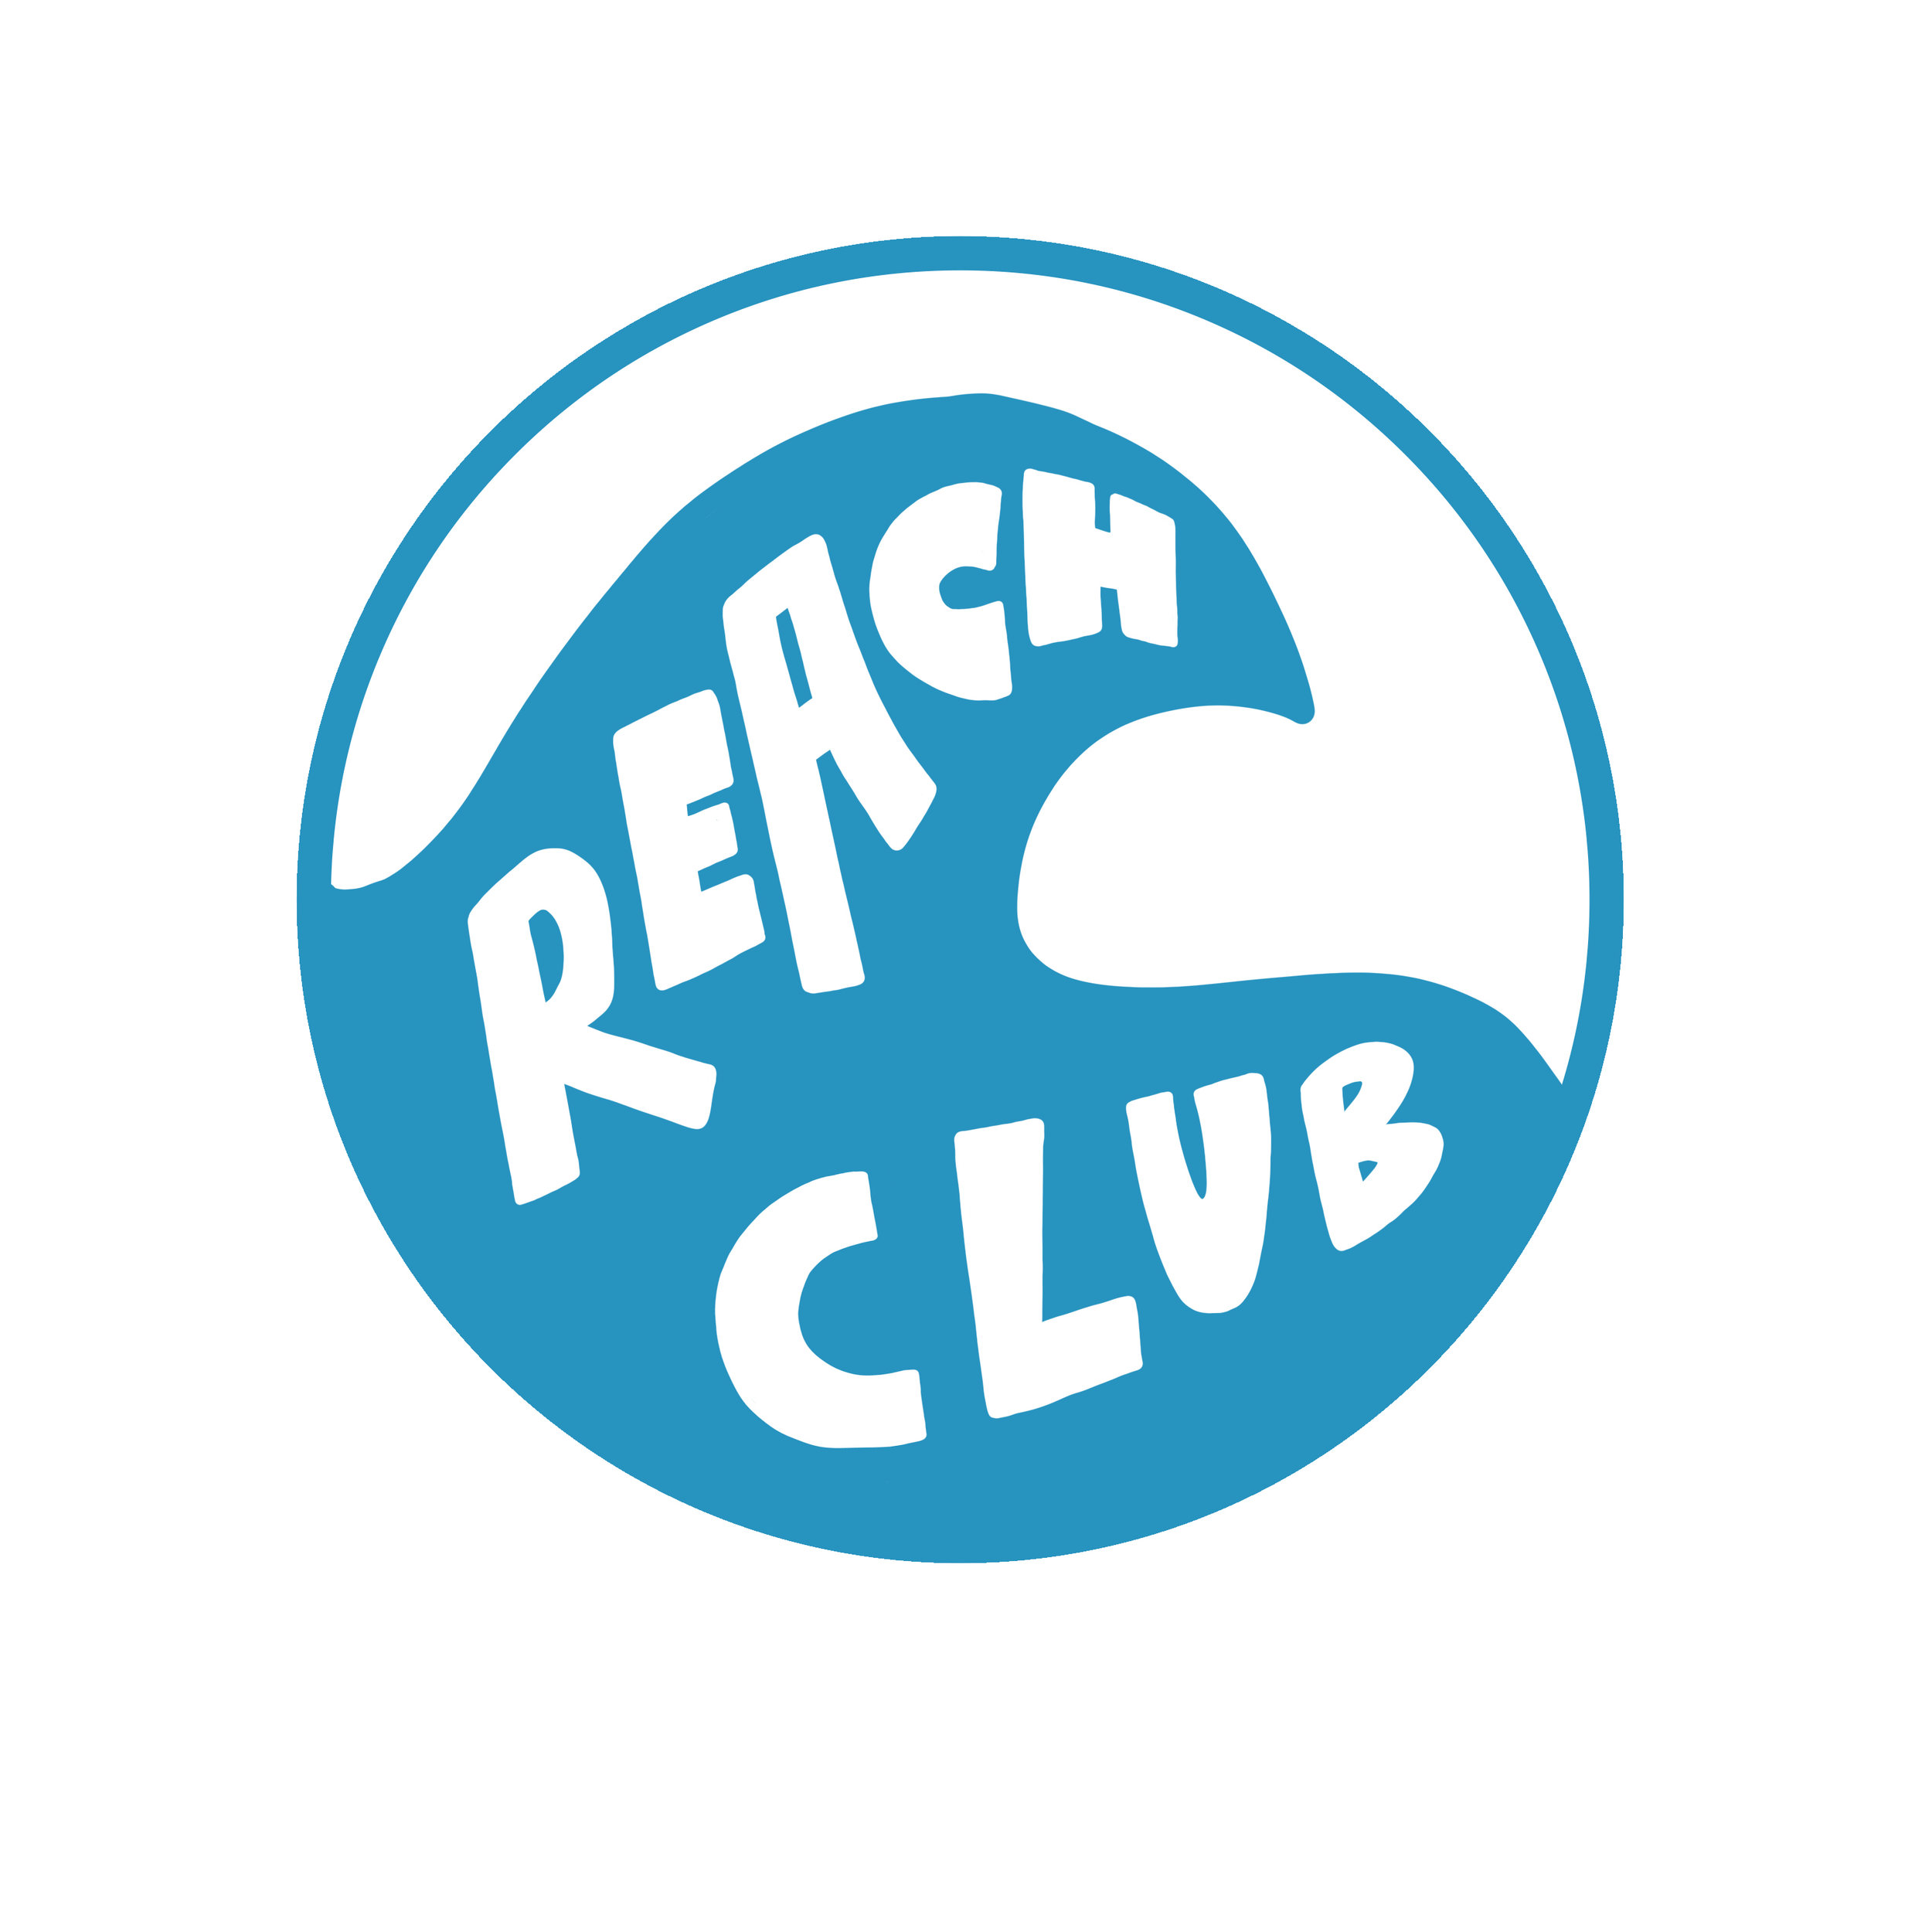 reach club 4 small c no school transparent.jpg